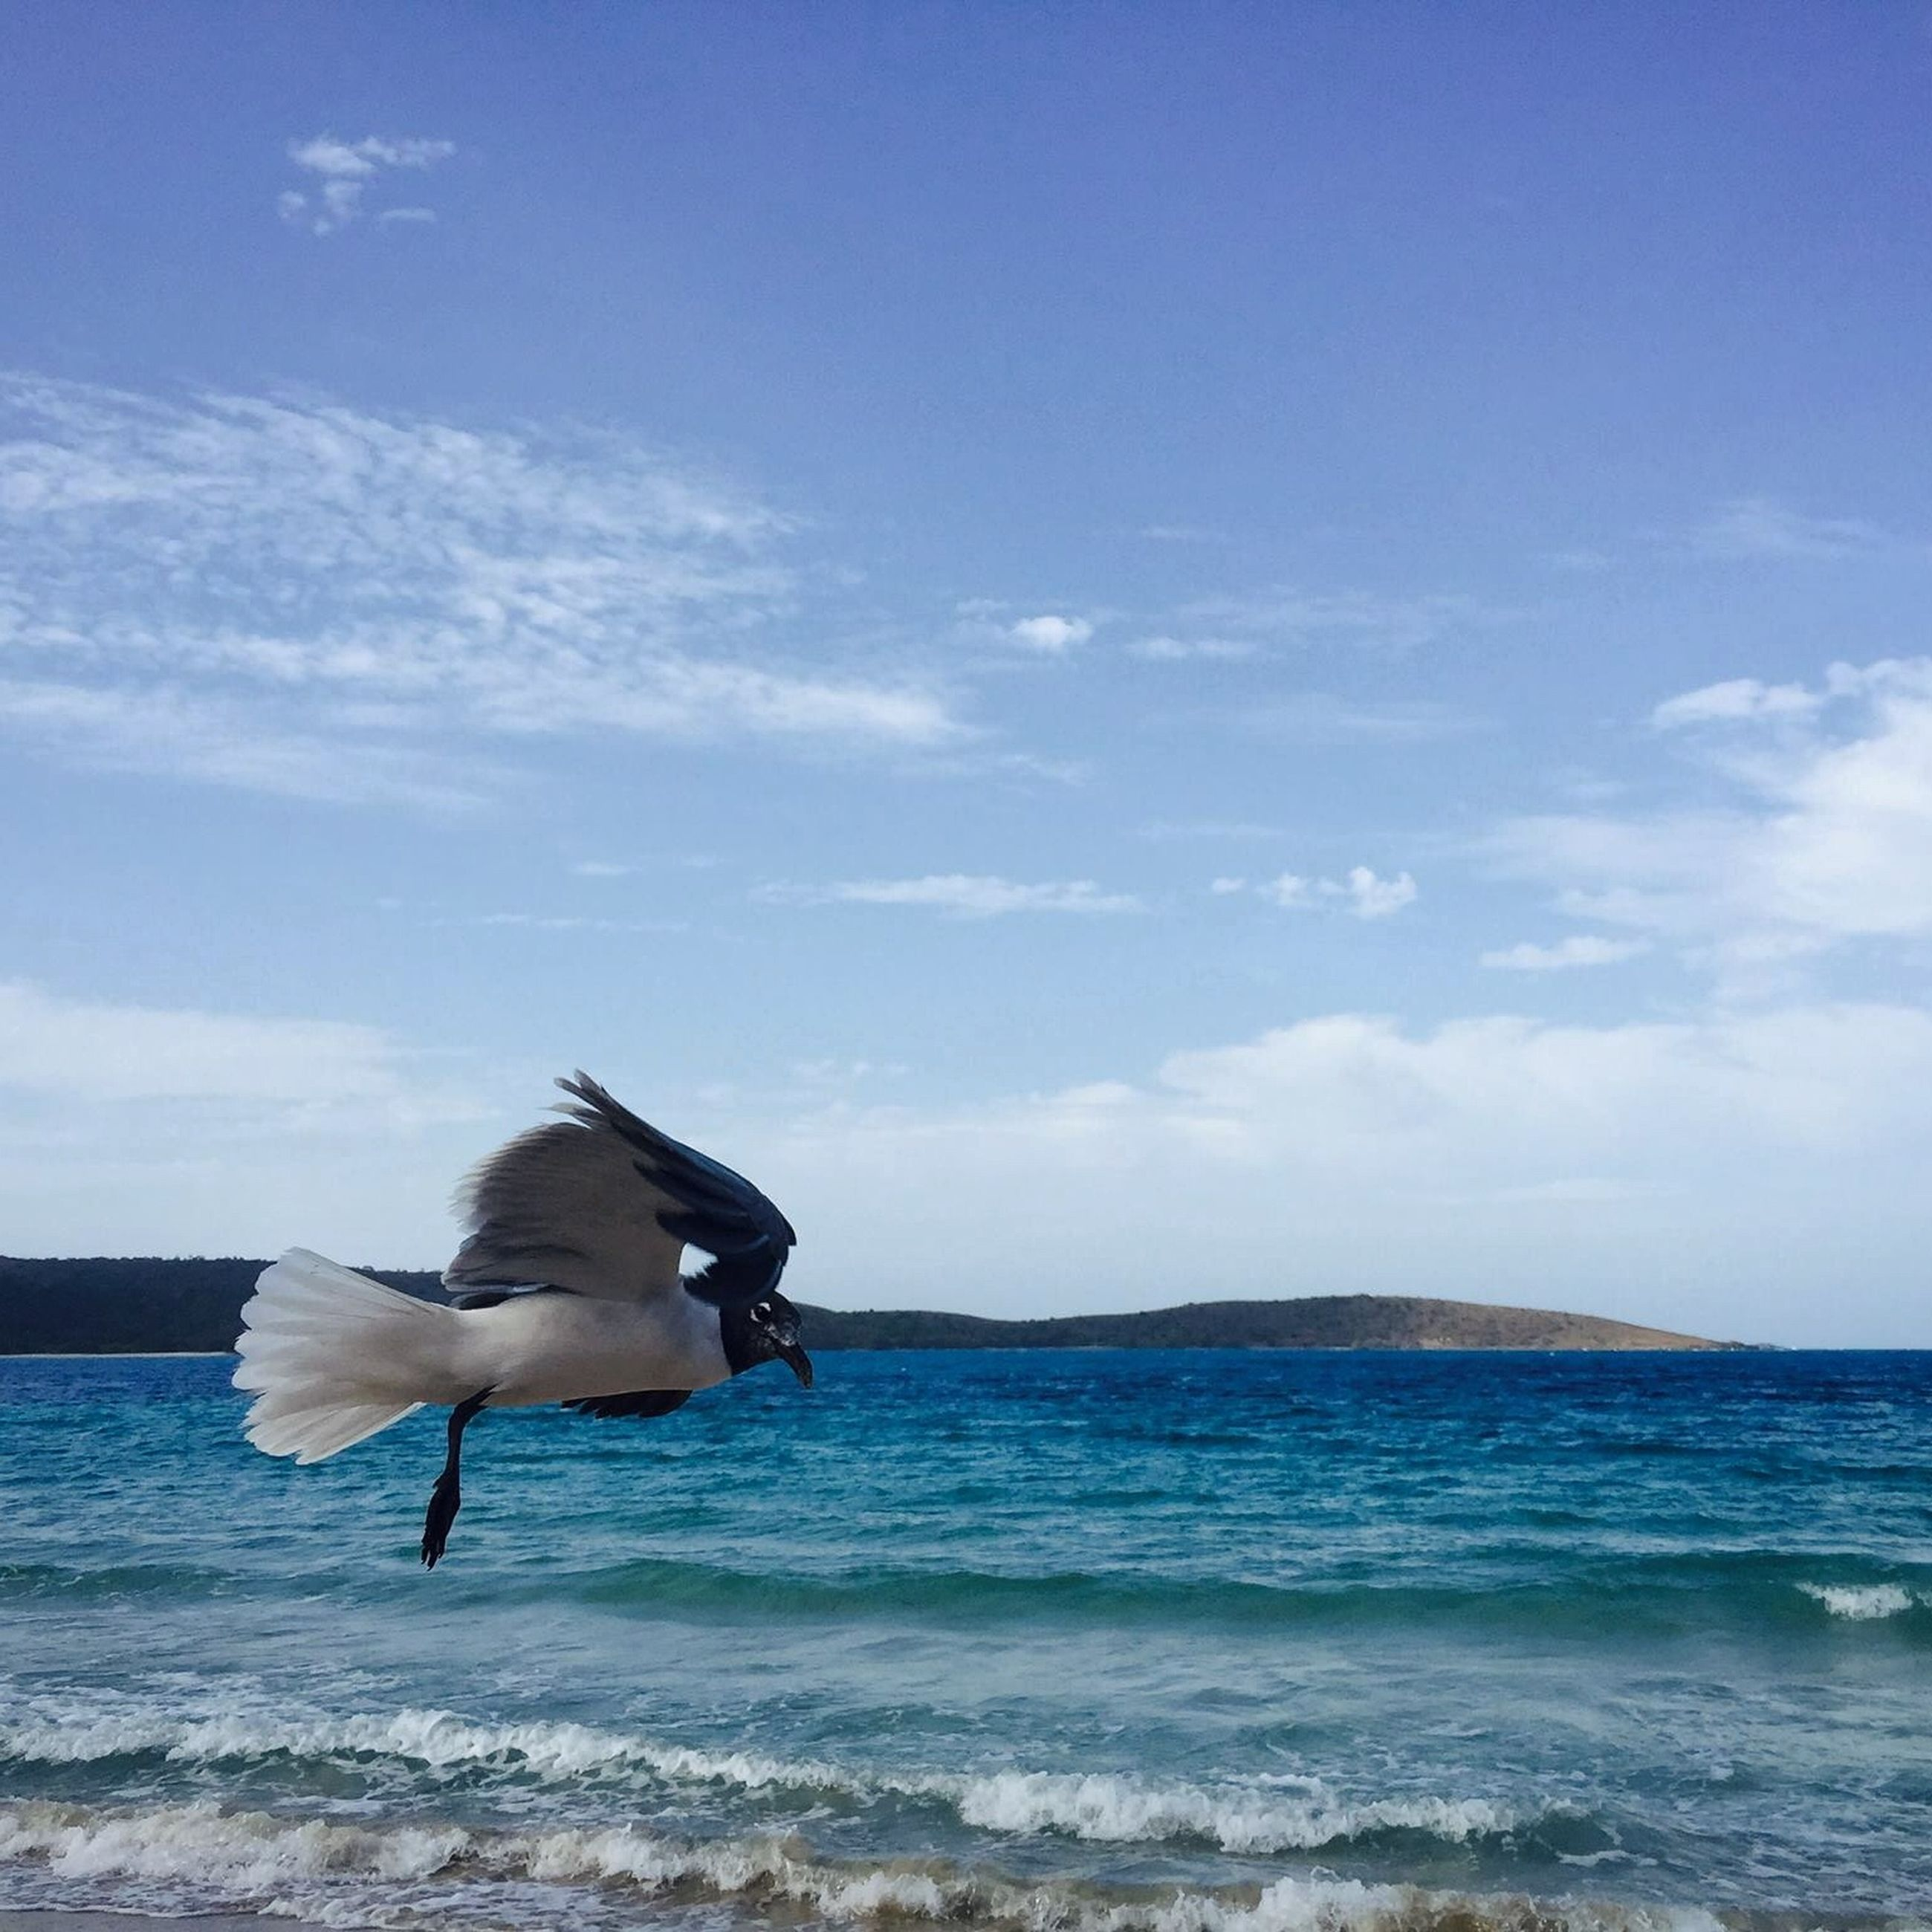 sea, water, horizon over water, beach, sky, flying, bird, seagull, shore, blue, beauty in nature, nature, tranquility, tranquil scene, spread wings, sand, scenics, cloud, one person, cloud - sky